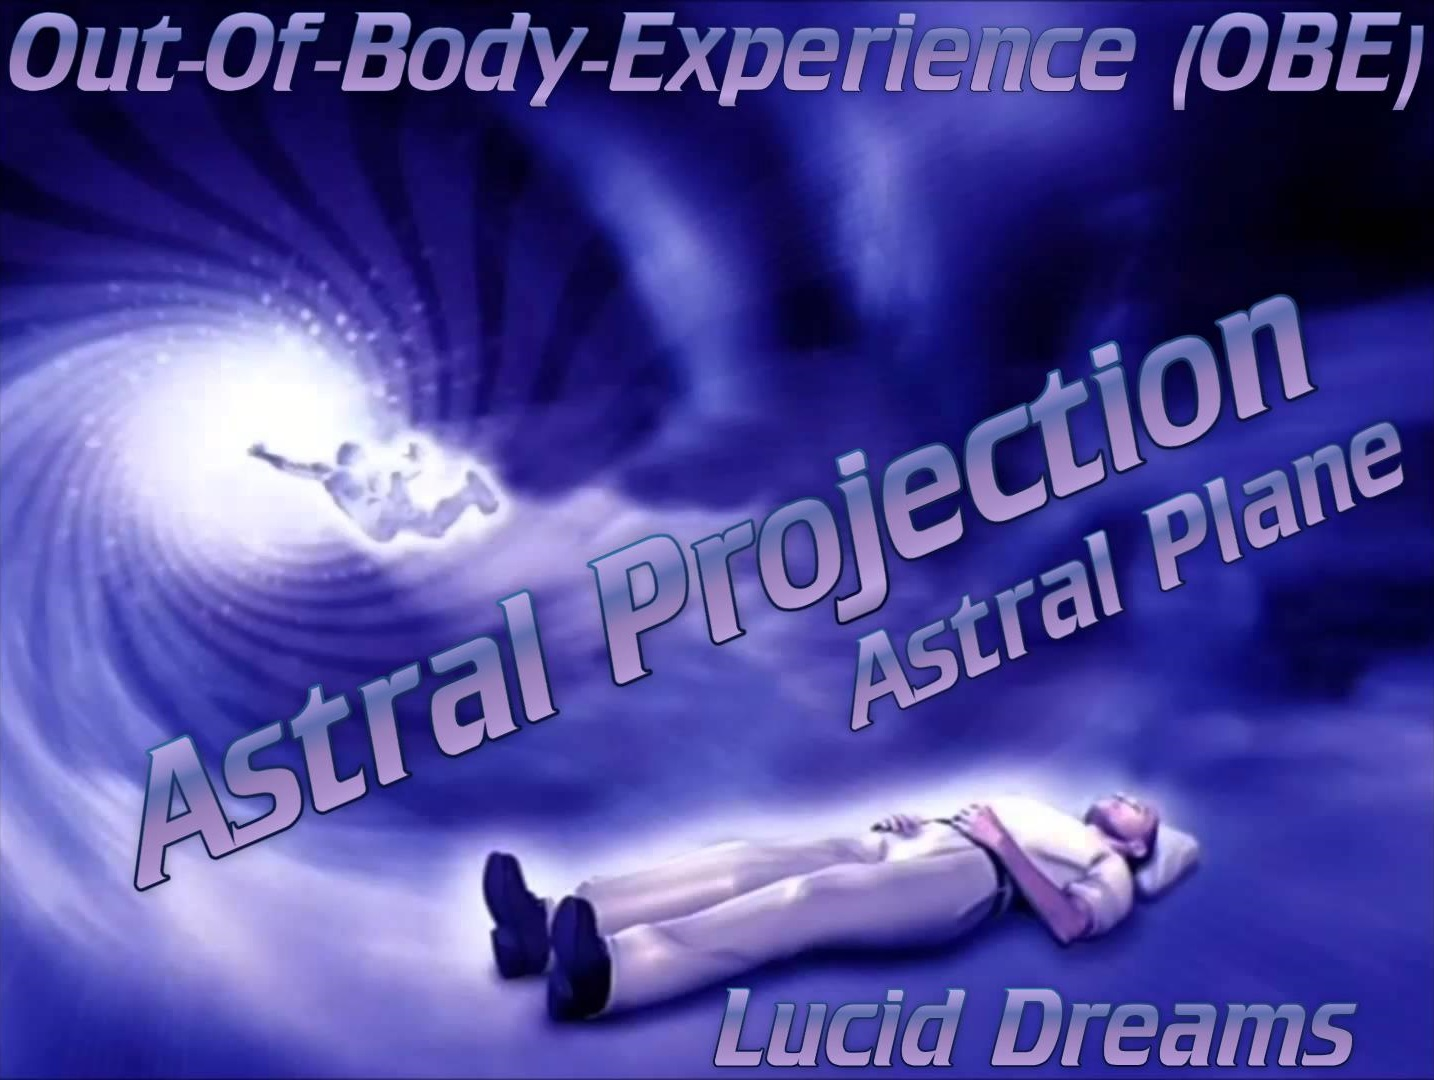 a comparison of lucid dreaming and out of body experiences obe